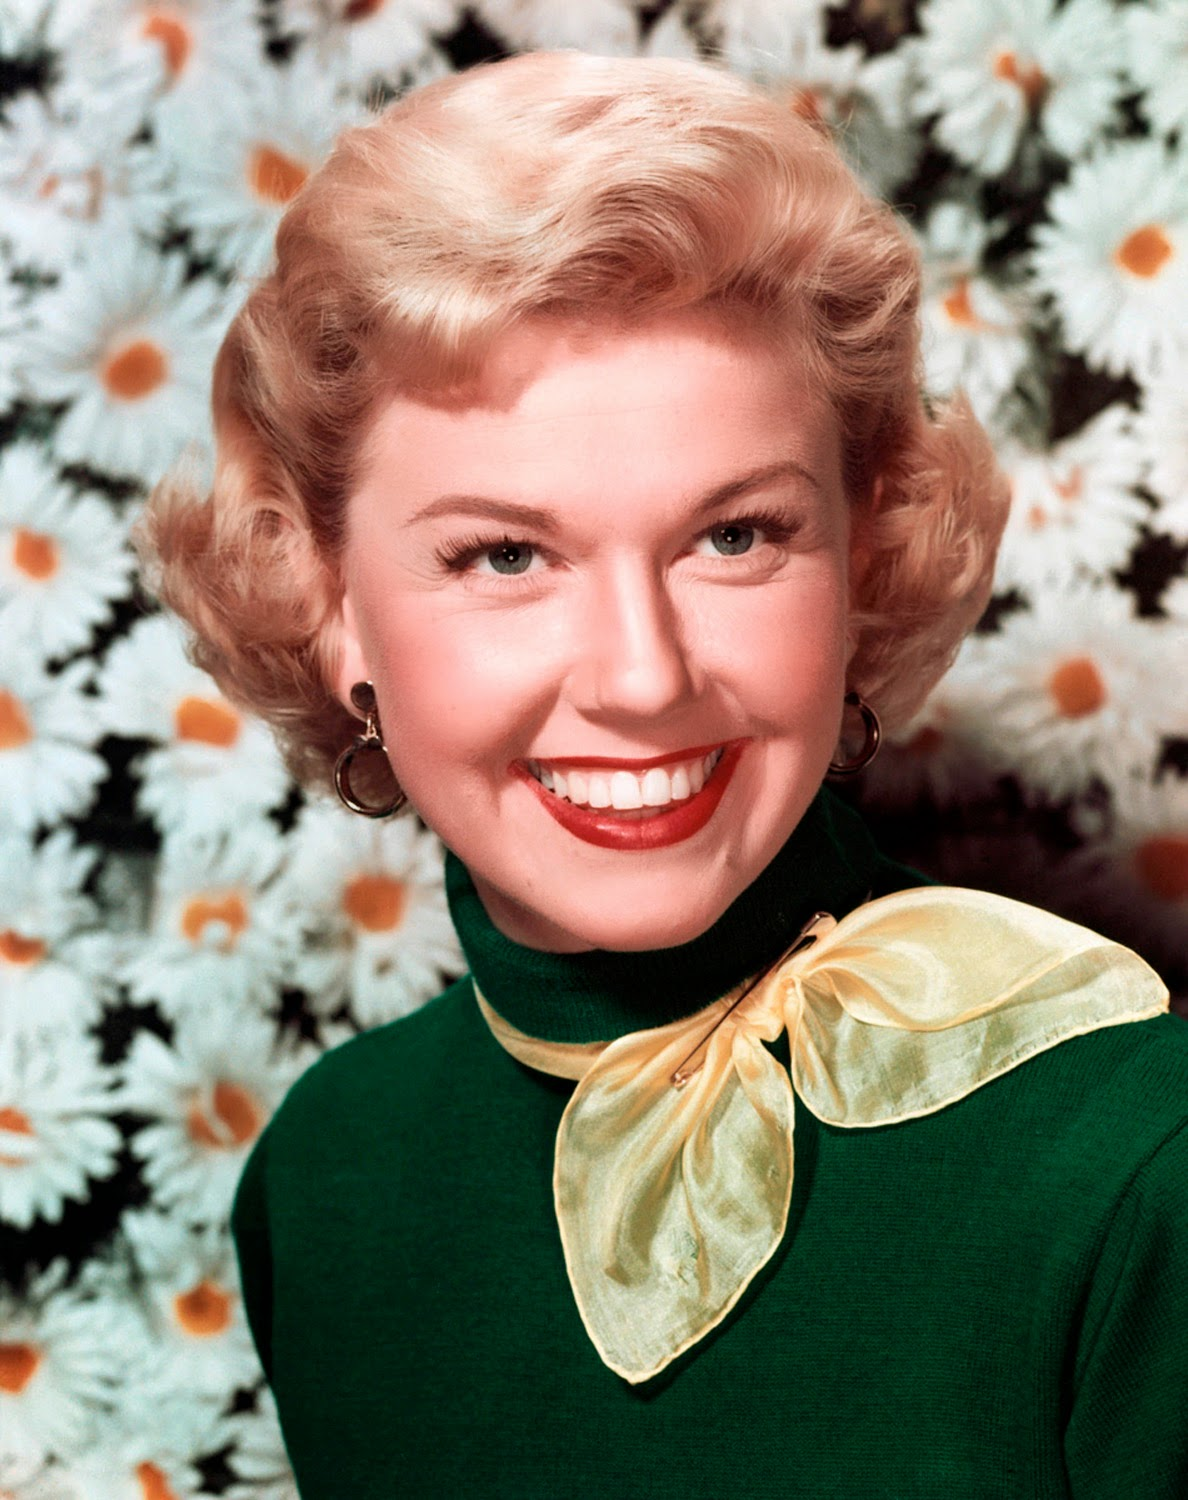 Doris Day Walking Dog Pictures: FROM THE VAULTS: Doris Day Born 3 April 1924